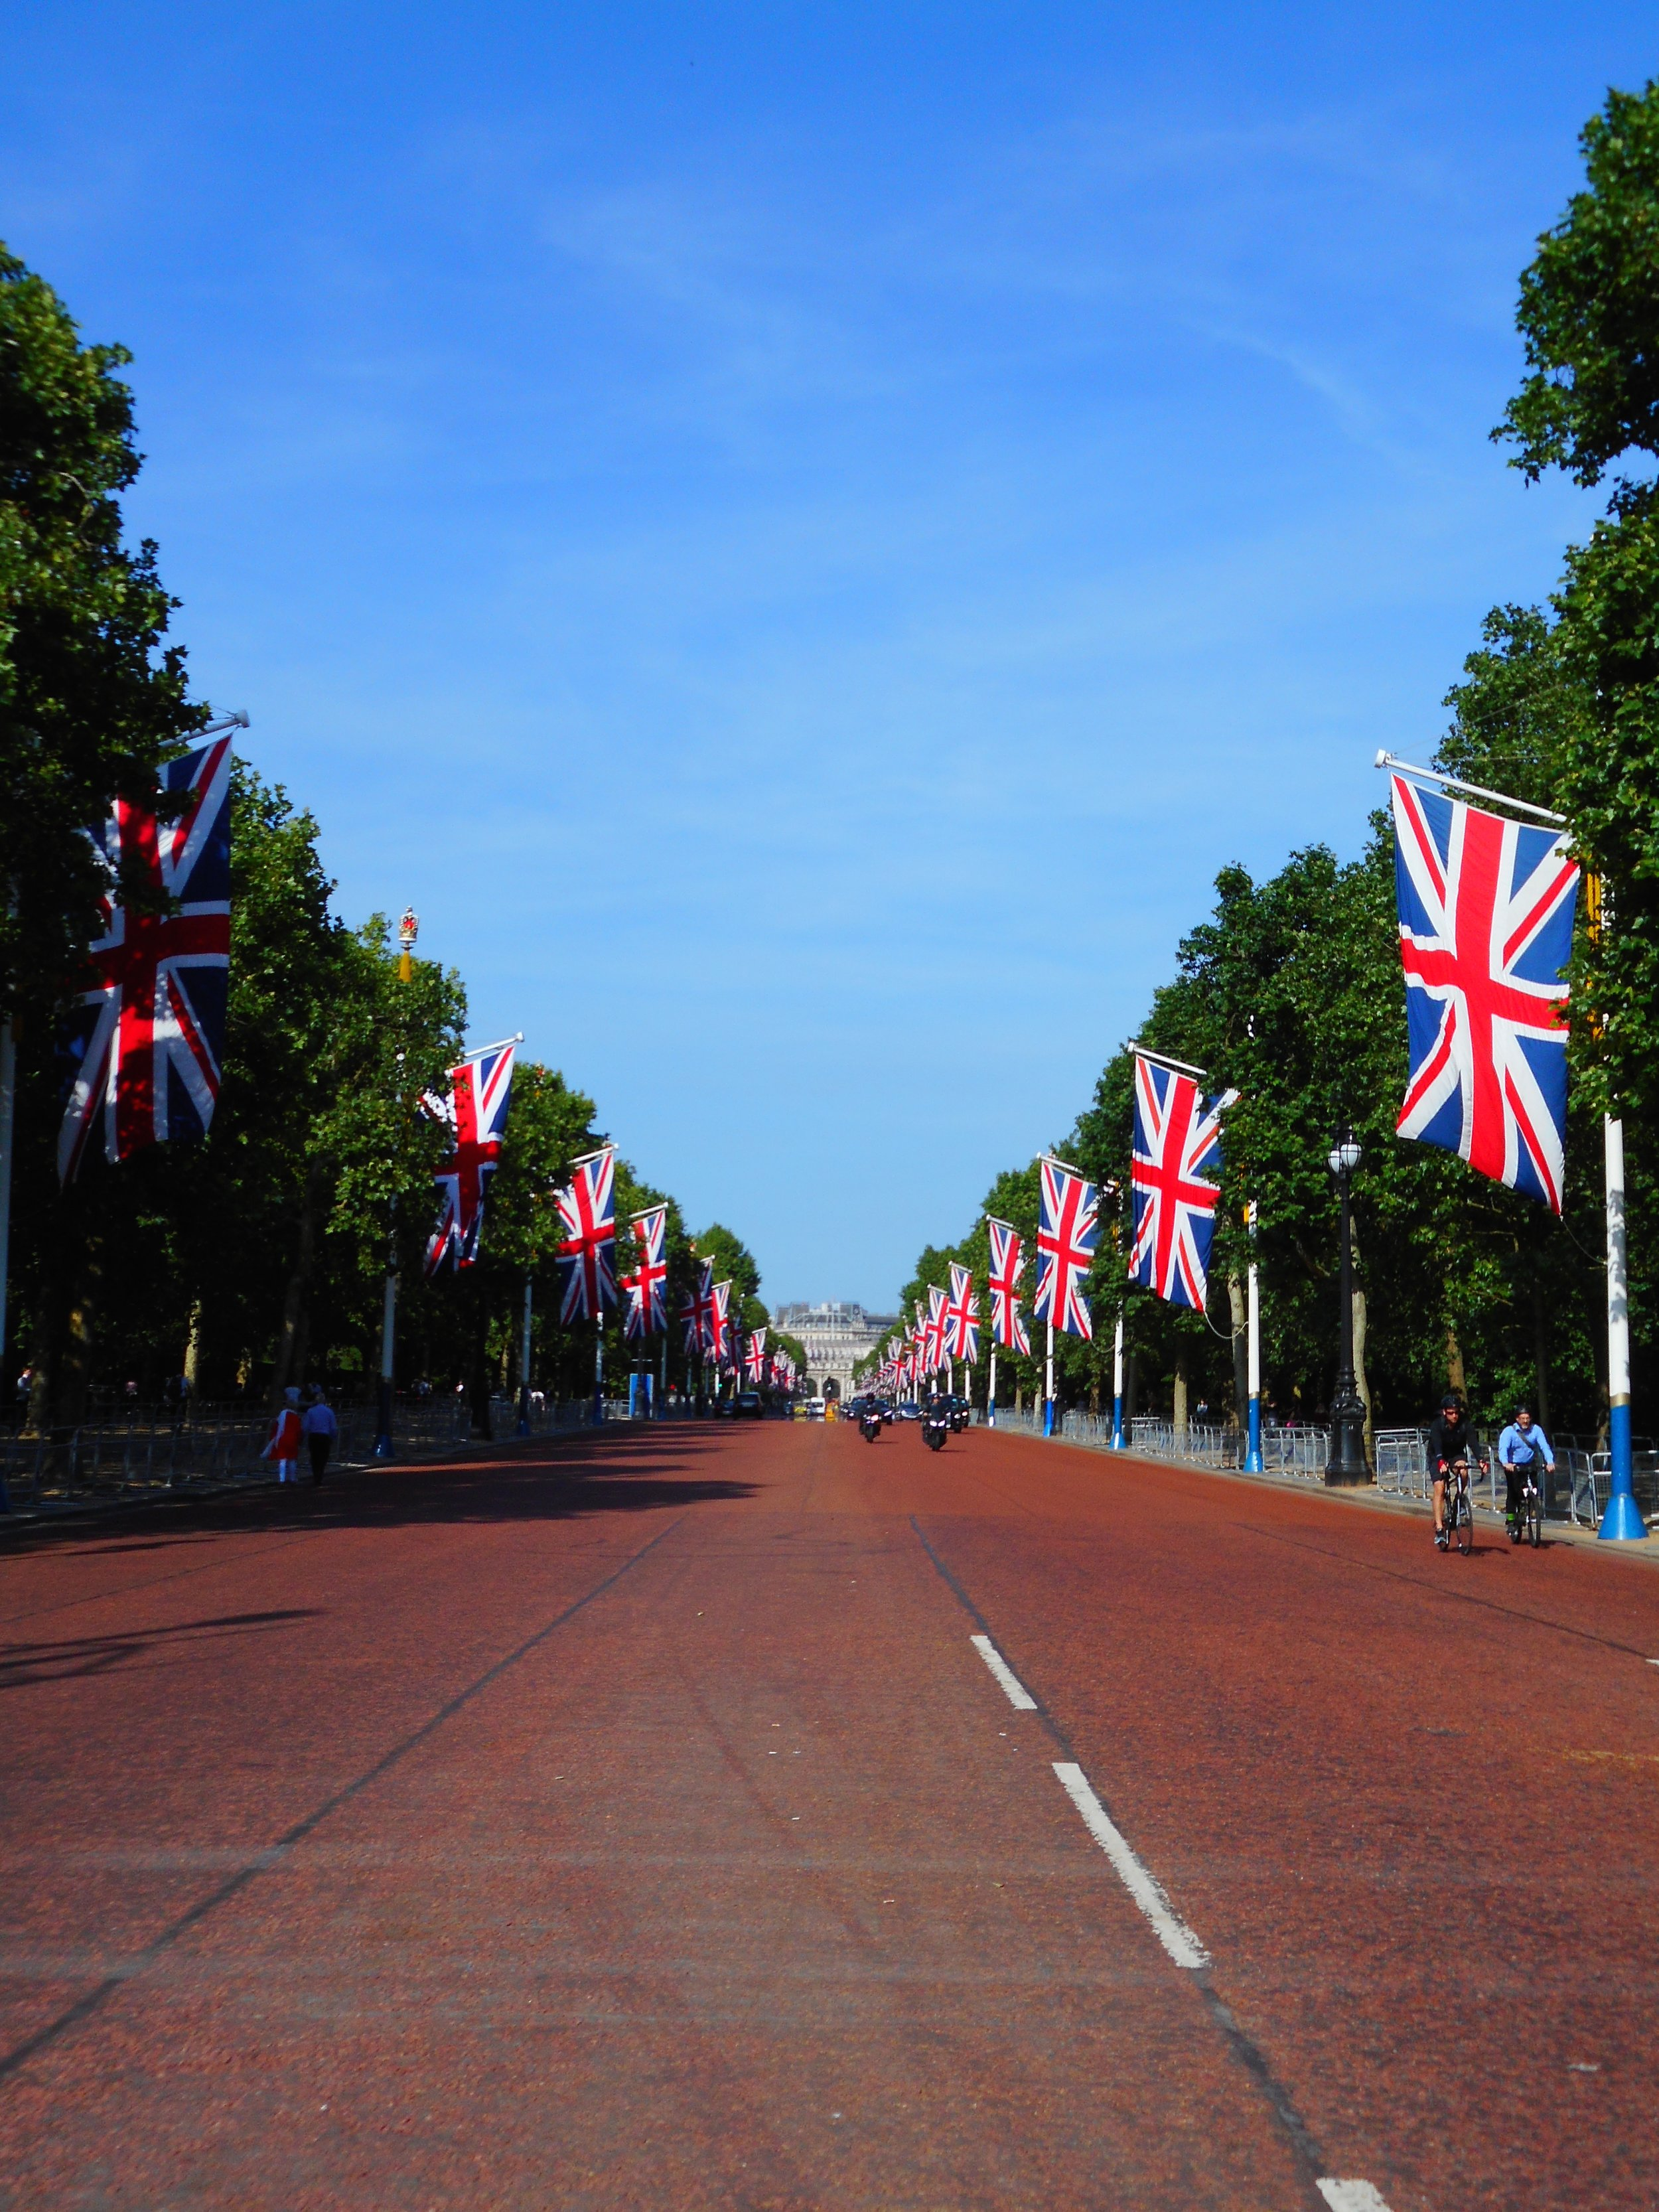 The road to Buckingham Palace was still decorated from the Royal Wedding